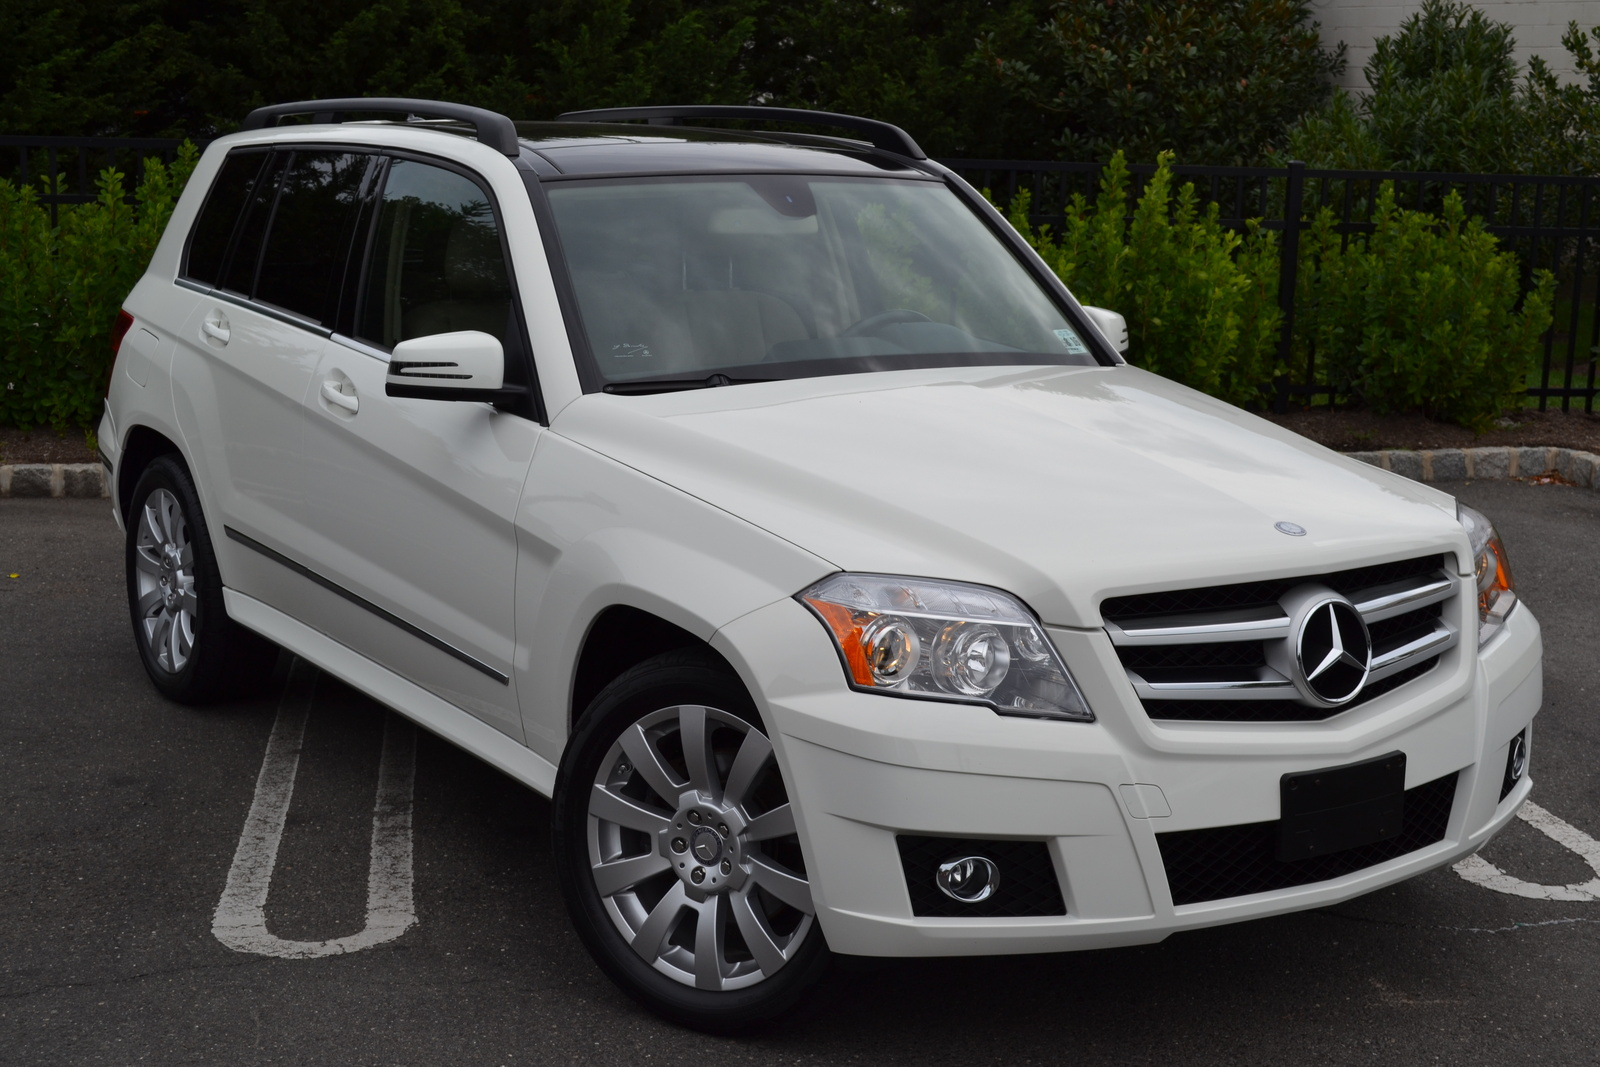 2012 mercedes benz glk class pictures cargurus for Mercedes benz glk 2012